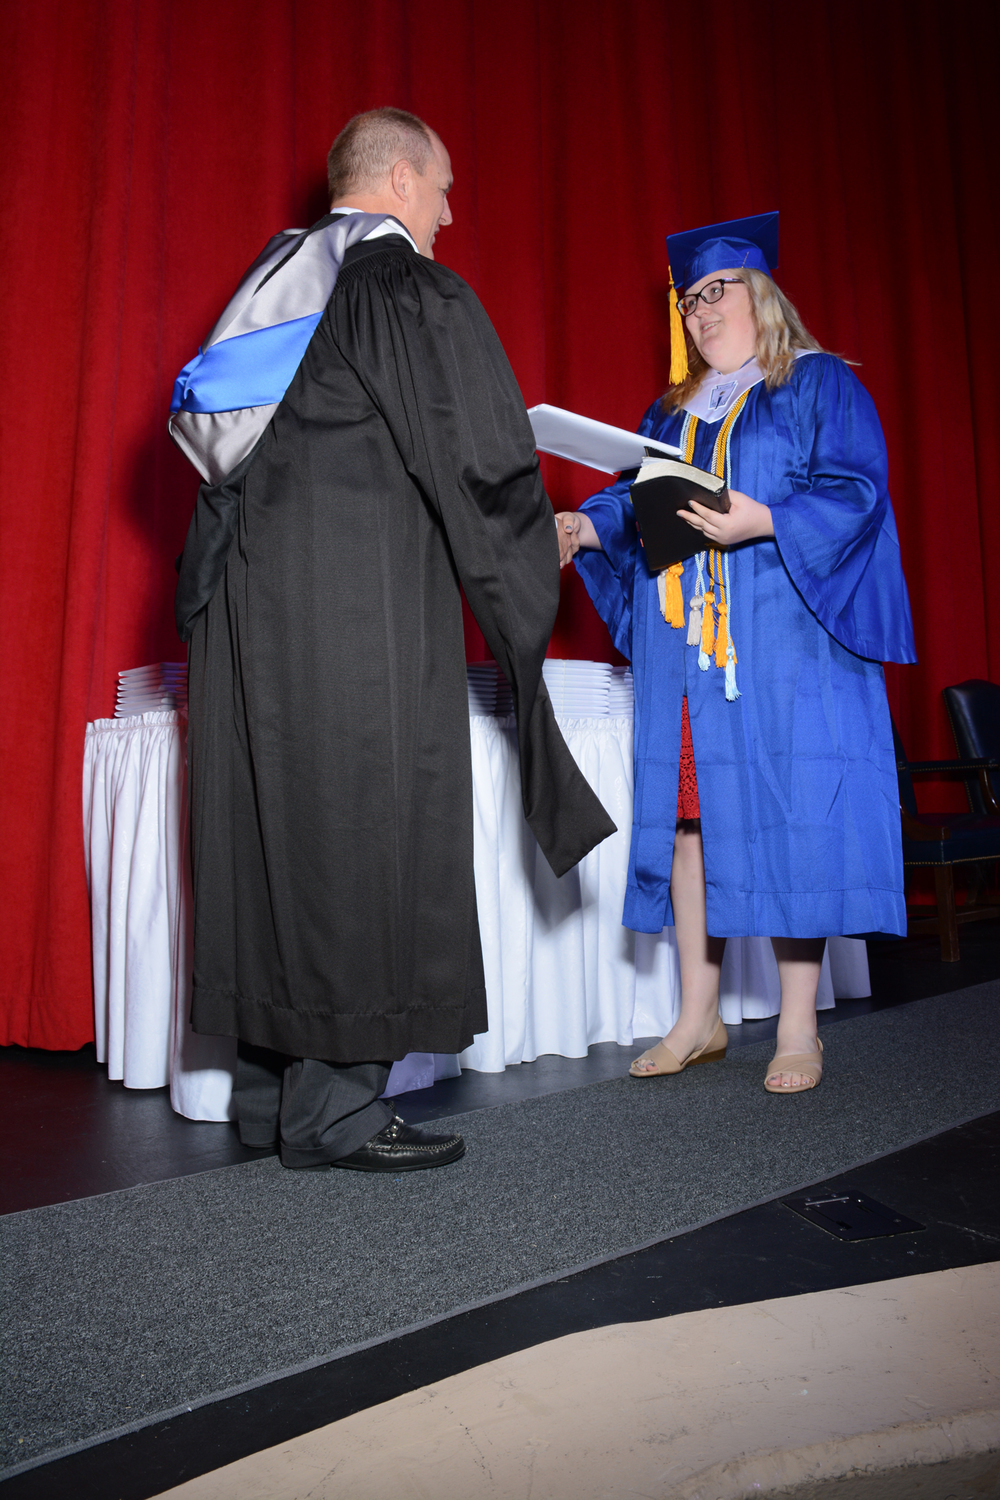 May16 GraduationPhotos01.jpg